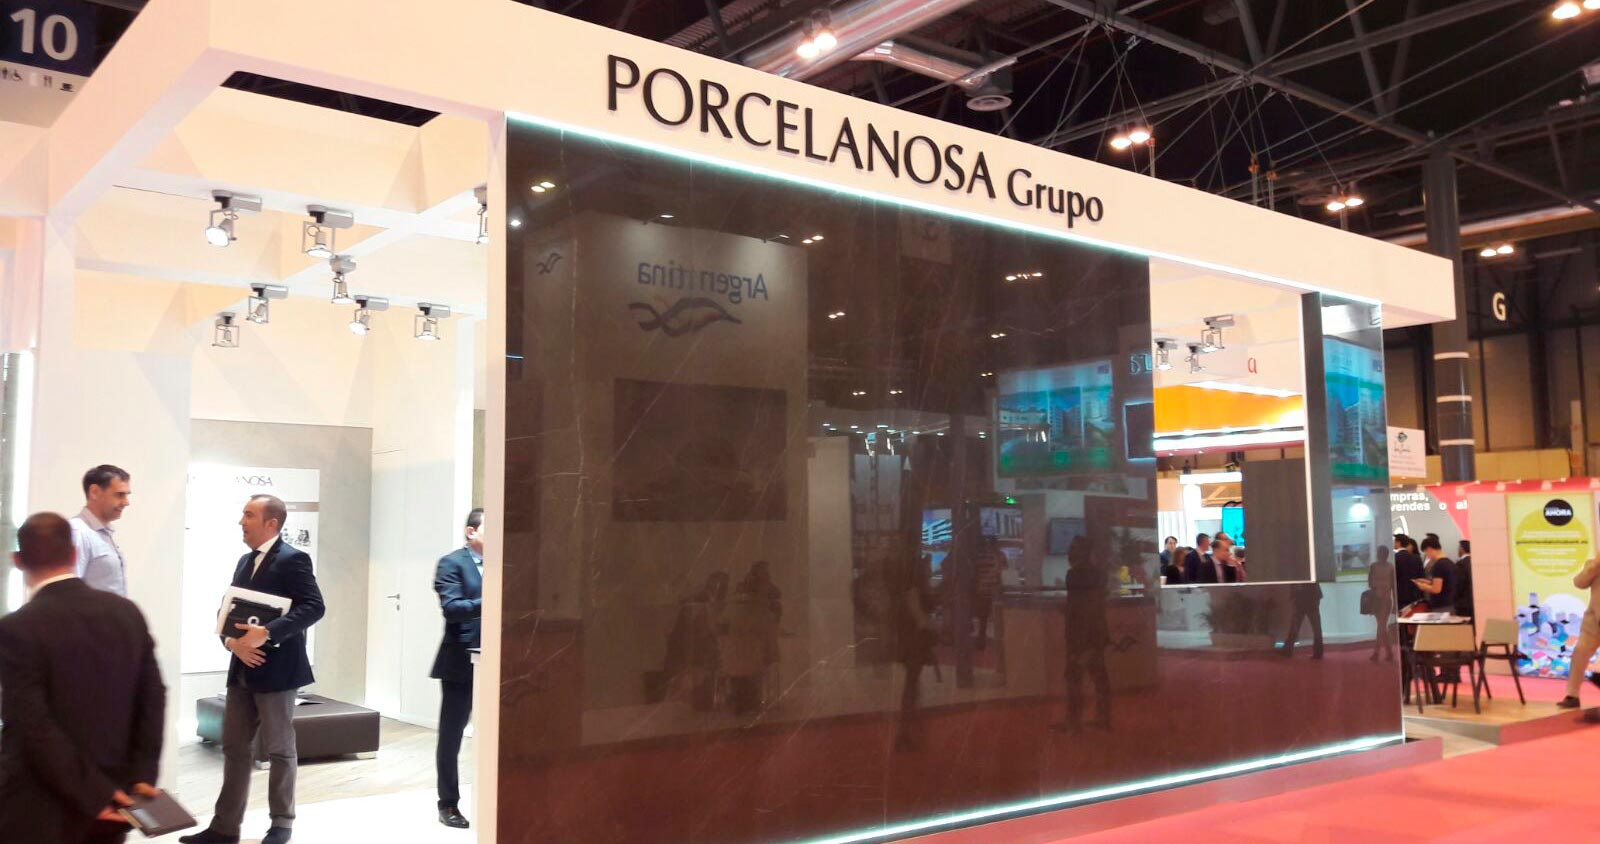 The PORCELANOSA Group is on display at SIMA, confirming its quality for the residential projects design